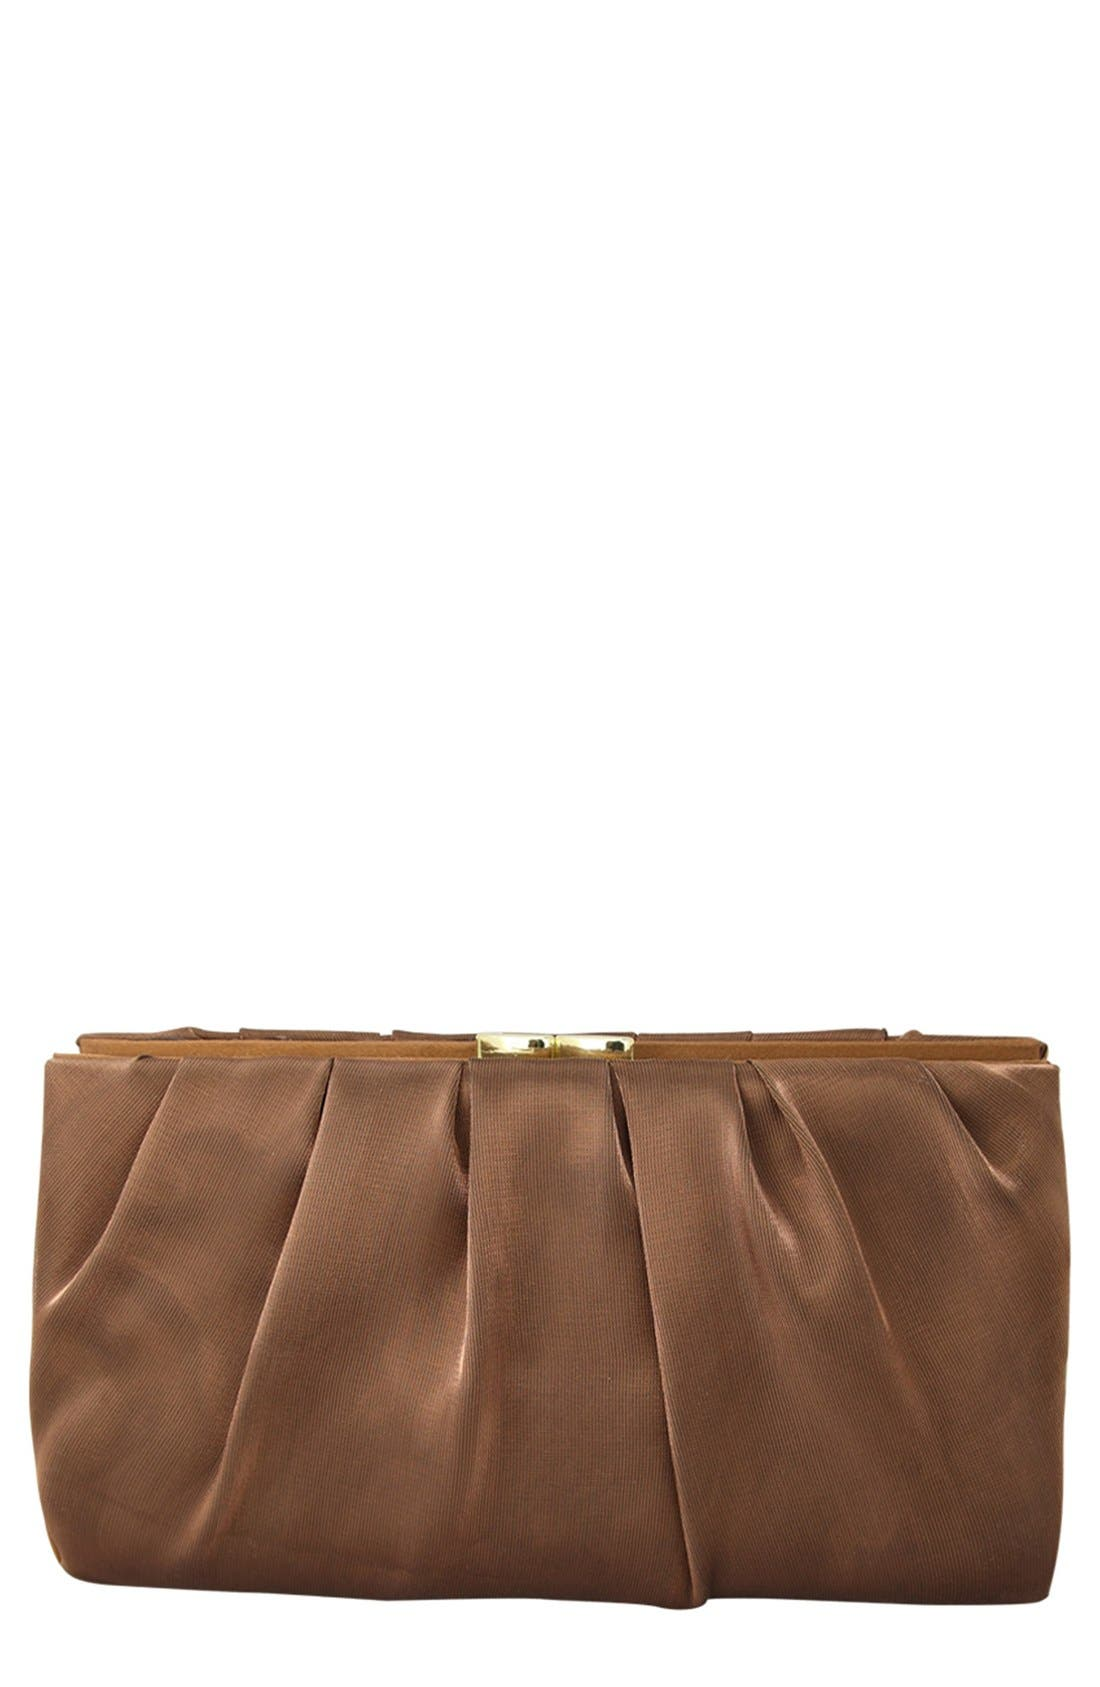 'Larry' Satin Clutch,                         Main,                         color, 200